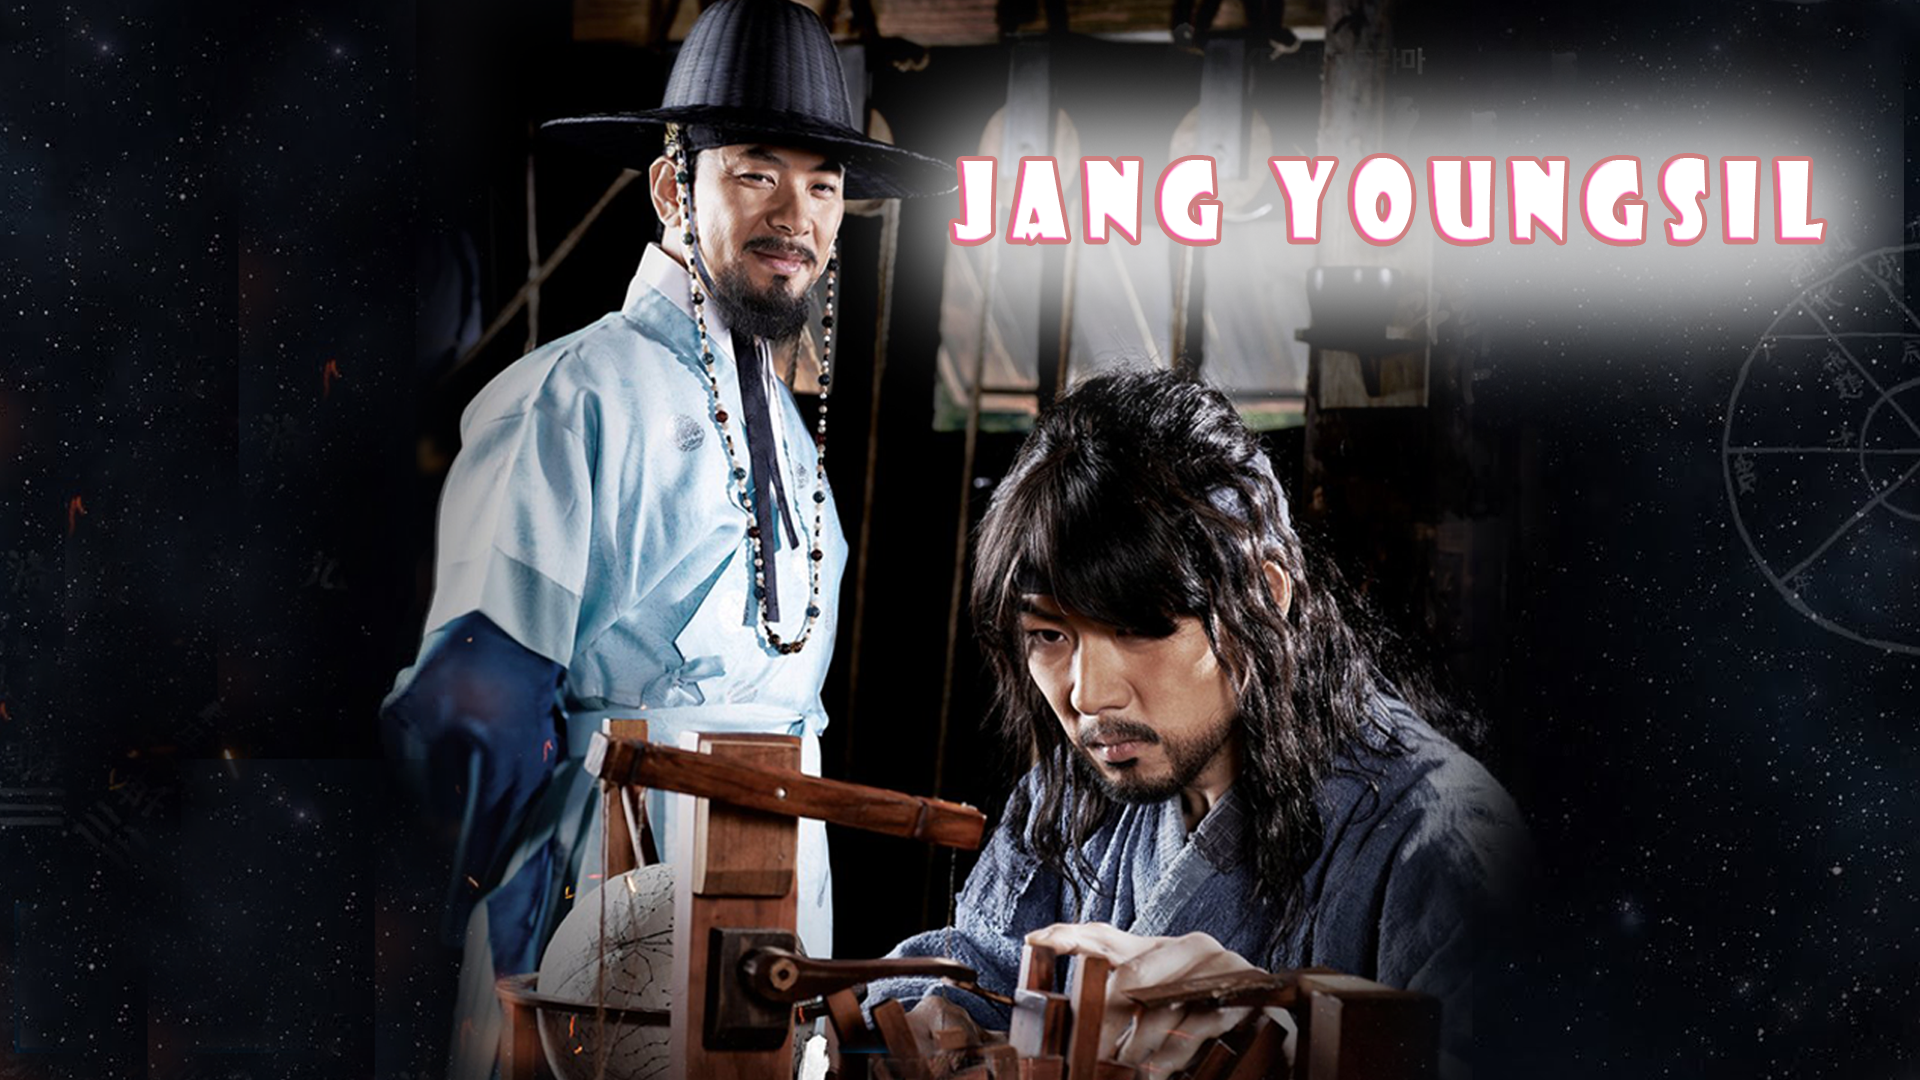 Jang Youngsil on Amazon Prime Video UK